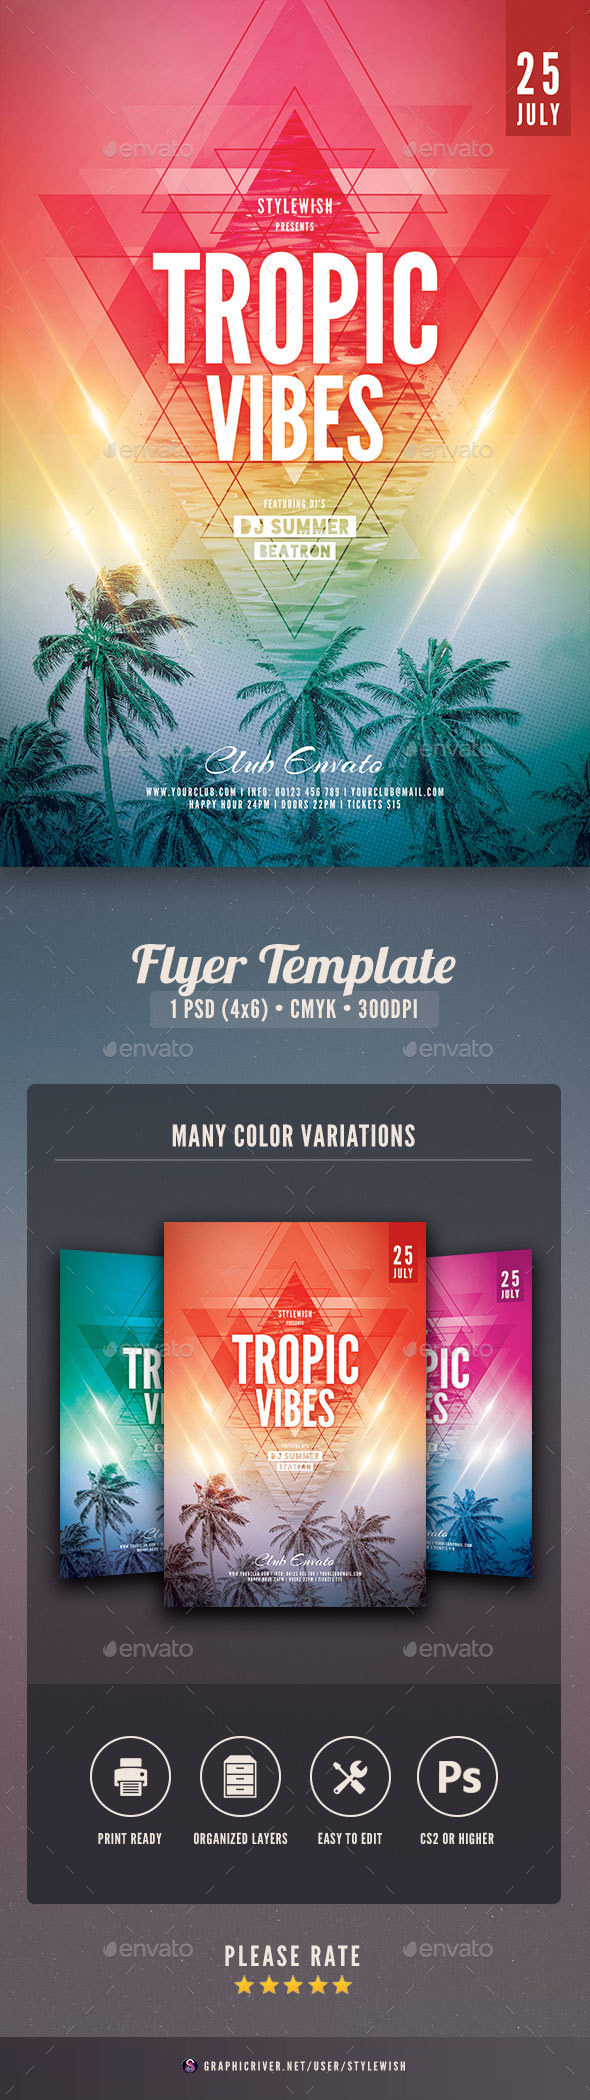 Tropic Vibes Flyer - Clubs & Parties Events